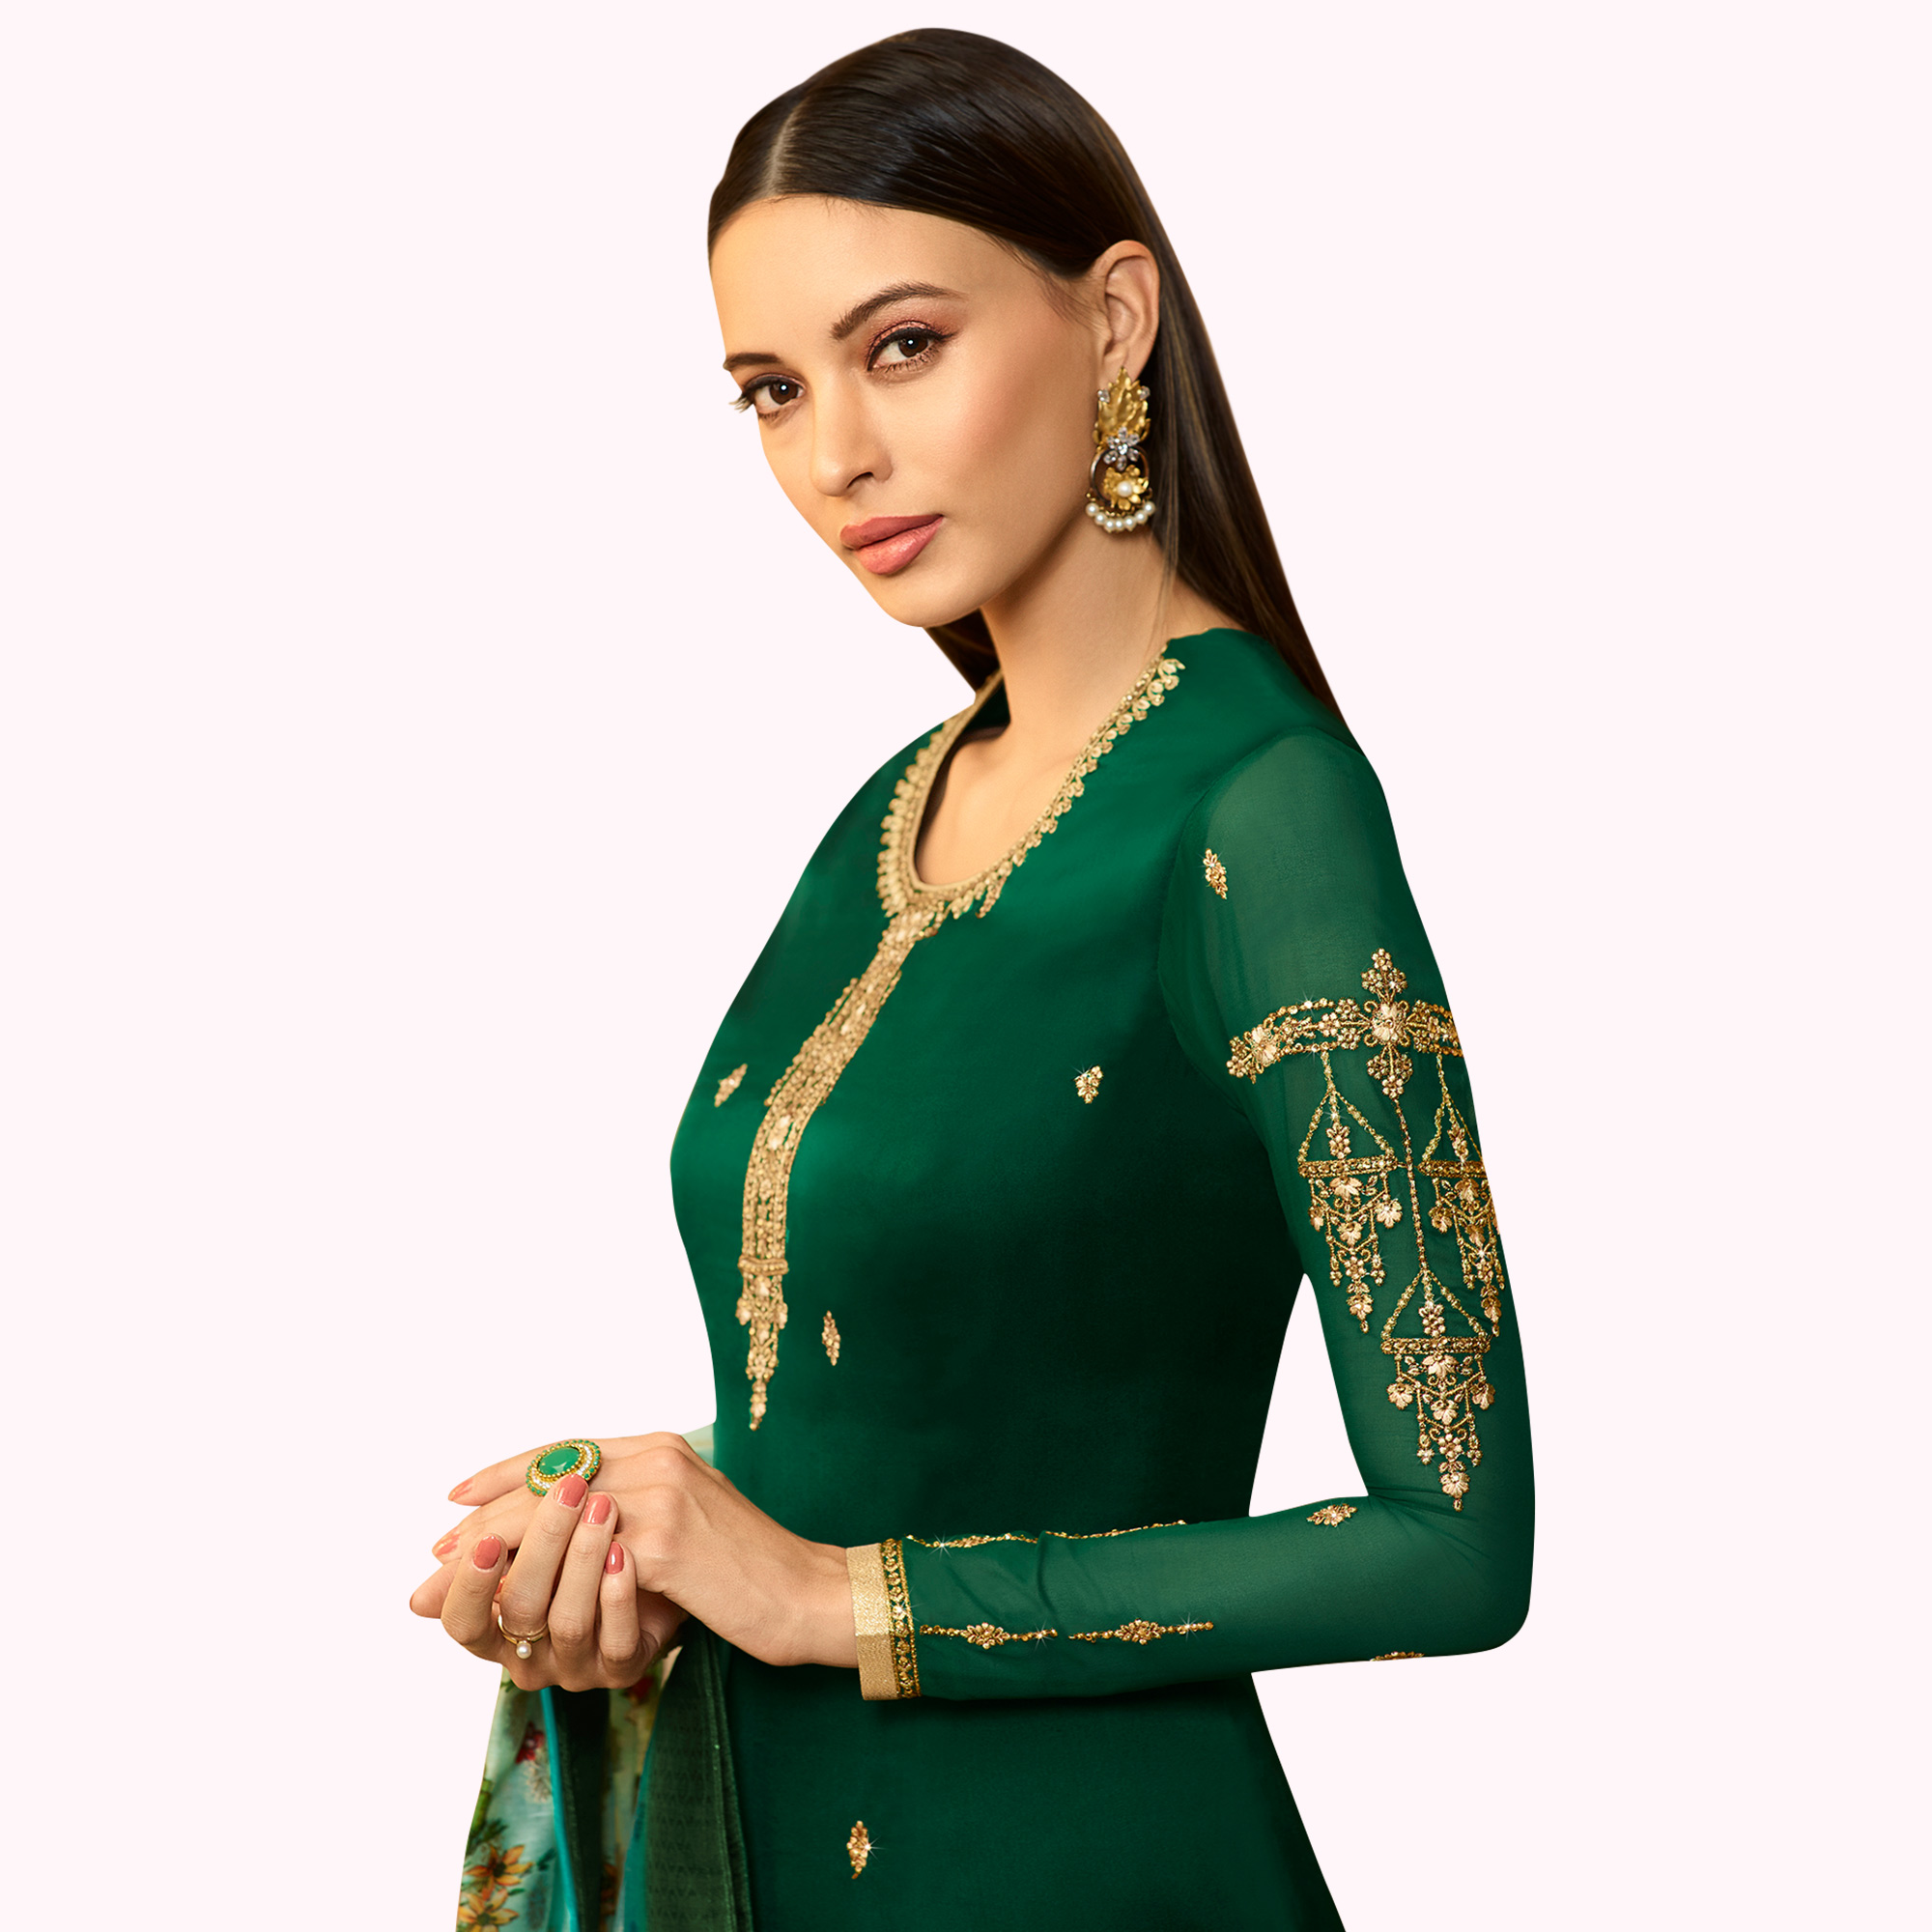 Glowing Dark Green Colored Partywear Embroidered Satin Georgette Salwar Suit With Banarasi Dupatta